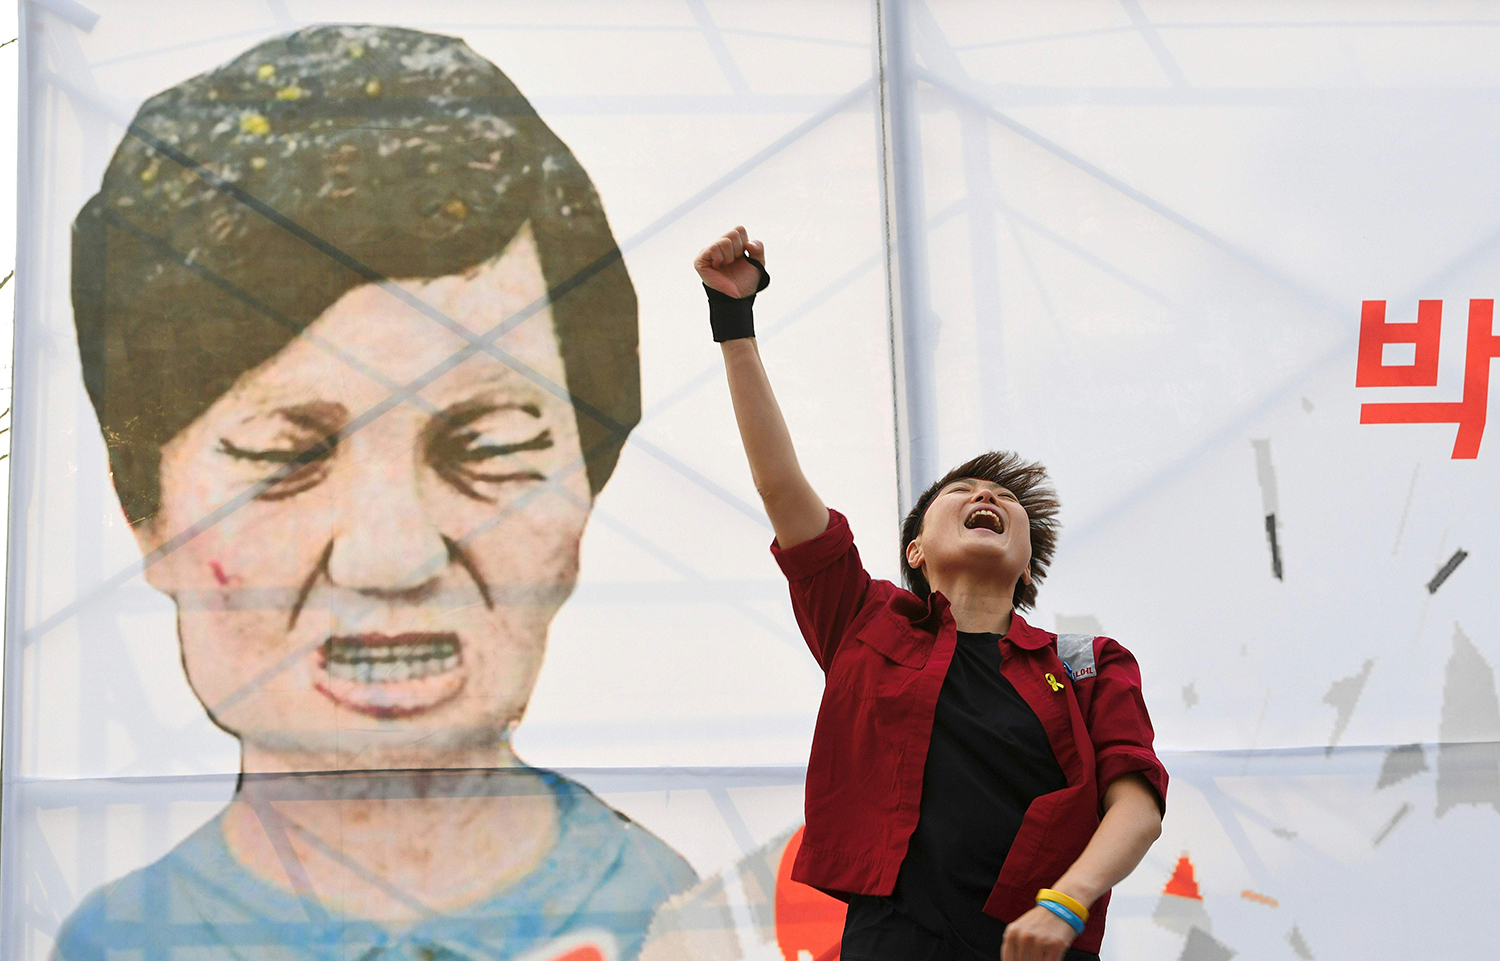 TOPSHOT - A protester shouts slogans in front of a caricature of South Korea's President Park Geun-Hye during a rally urging the impeachment of the president in Seoul on December 7, 2016. South Korea's scandal-hit Park said on December 6 she would accept the result of a looming and possibly lengthy impeachment process, but defied pressure to resign immediately. / AFP PHOTO / JUNG Yeon-Je / TT / kod 444